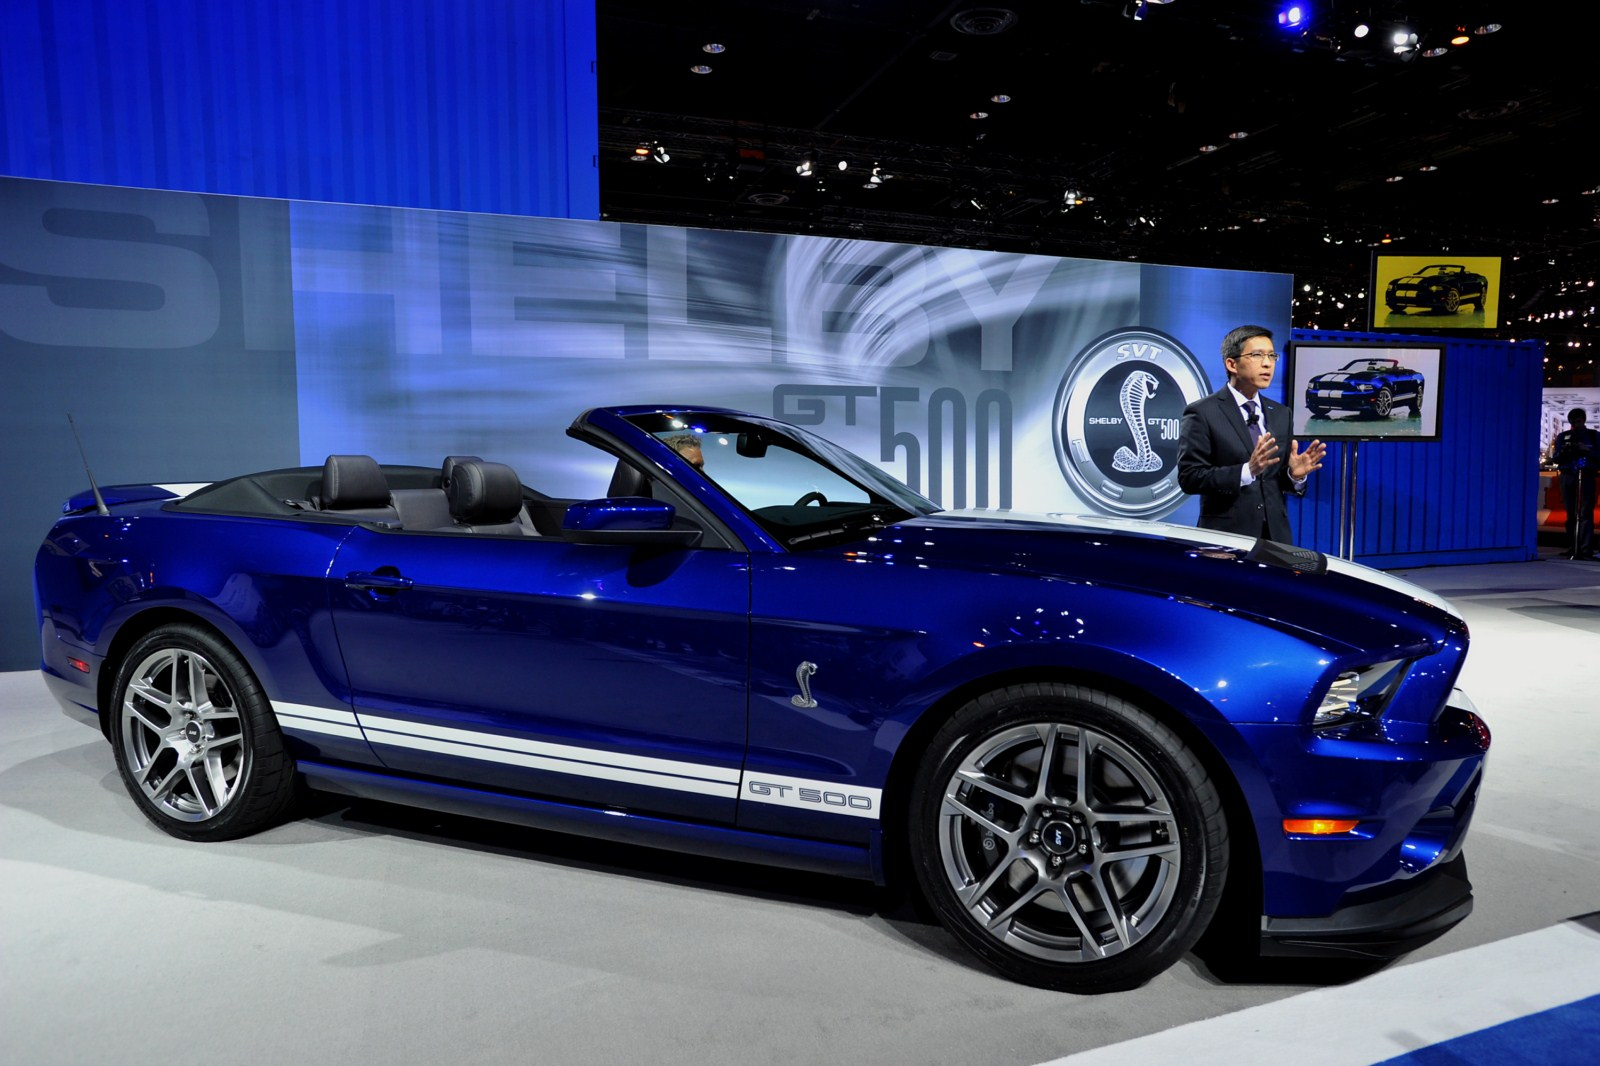 2013 ford mustang shelby gt 500 convertible first live video garage car. Black Bedroom Furniture Sets. Home Design Ideas